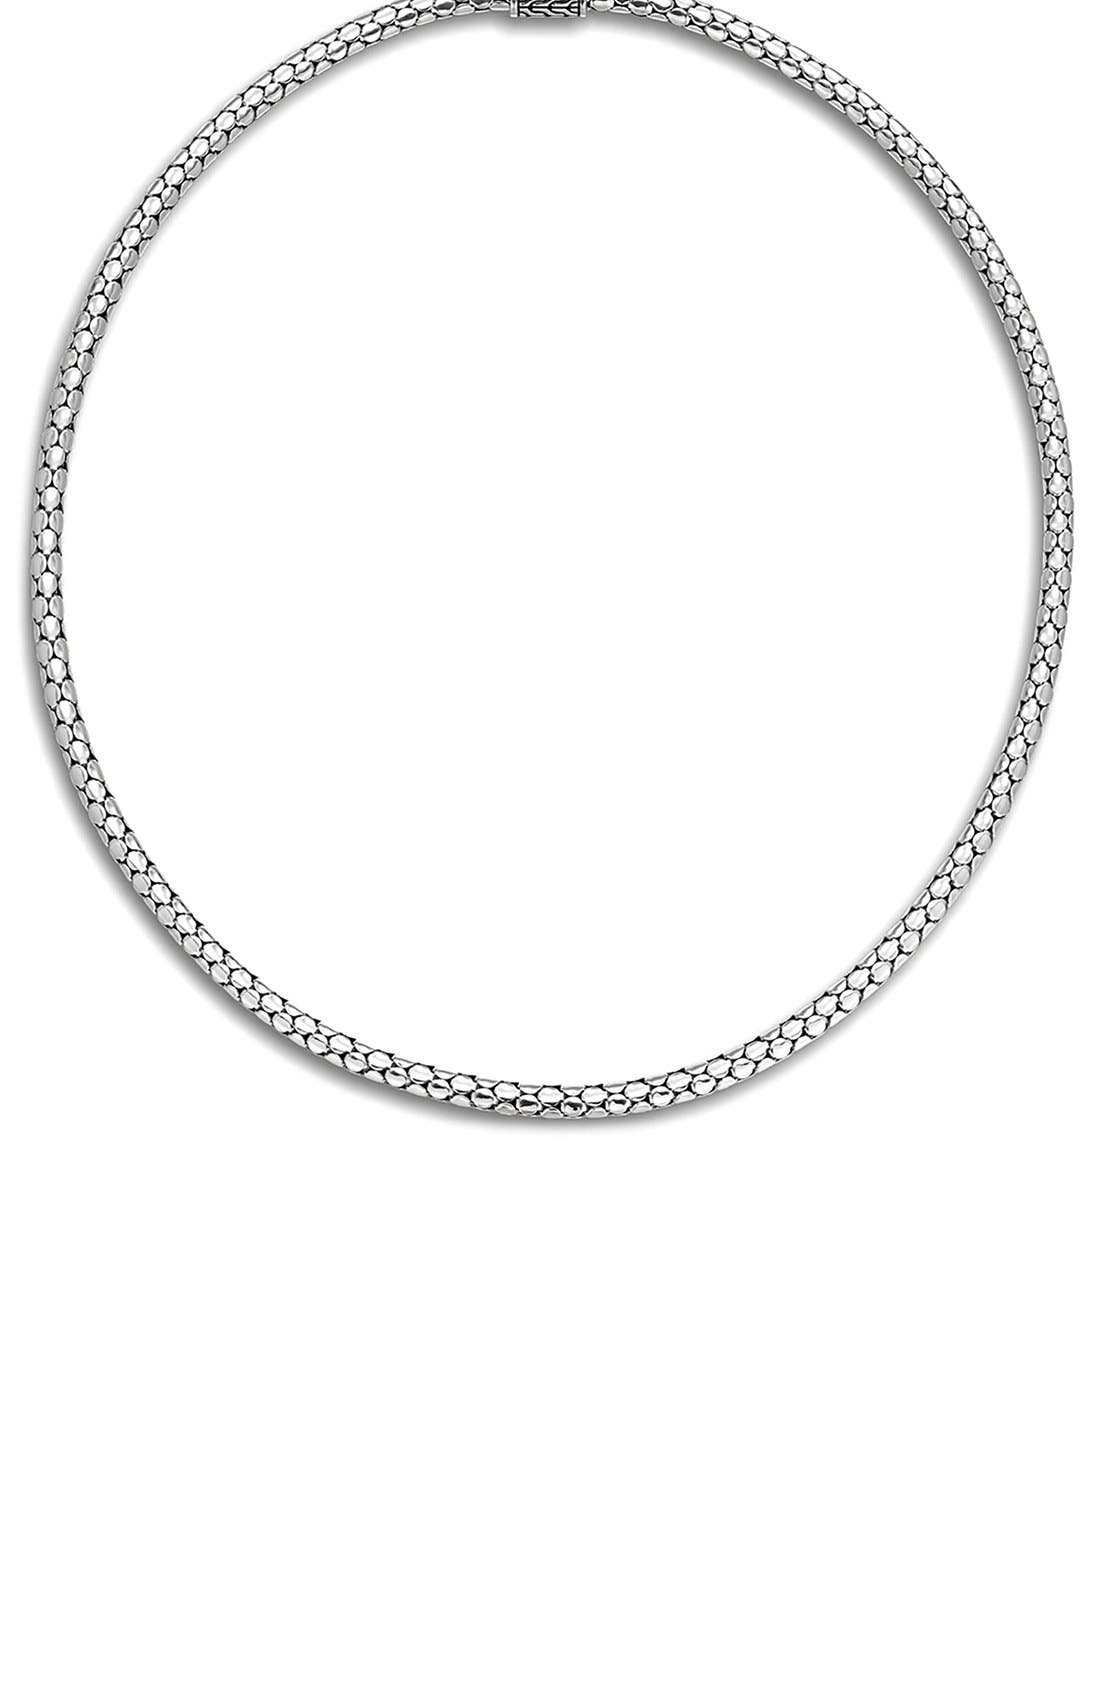 Dot Chain Necklace,                             Main thumbnail 1, color,                             SILVER